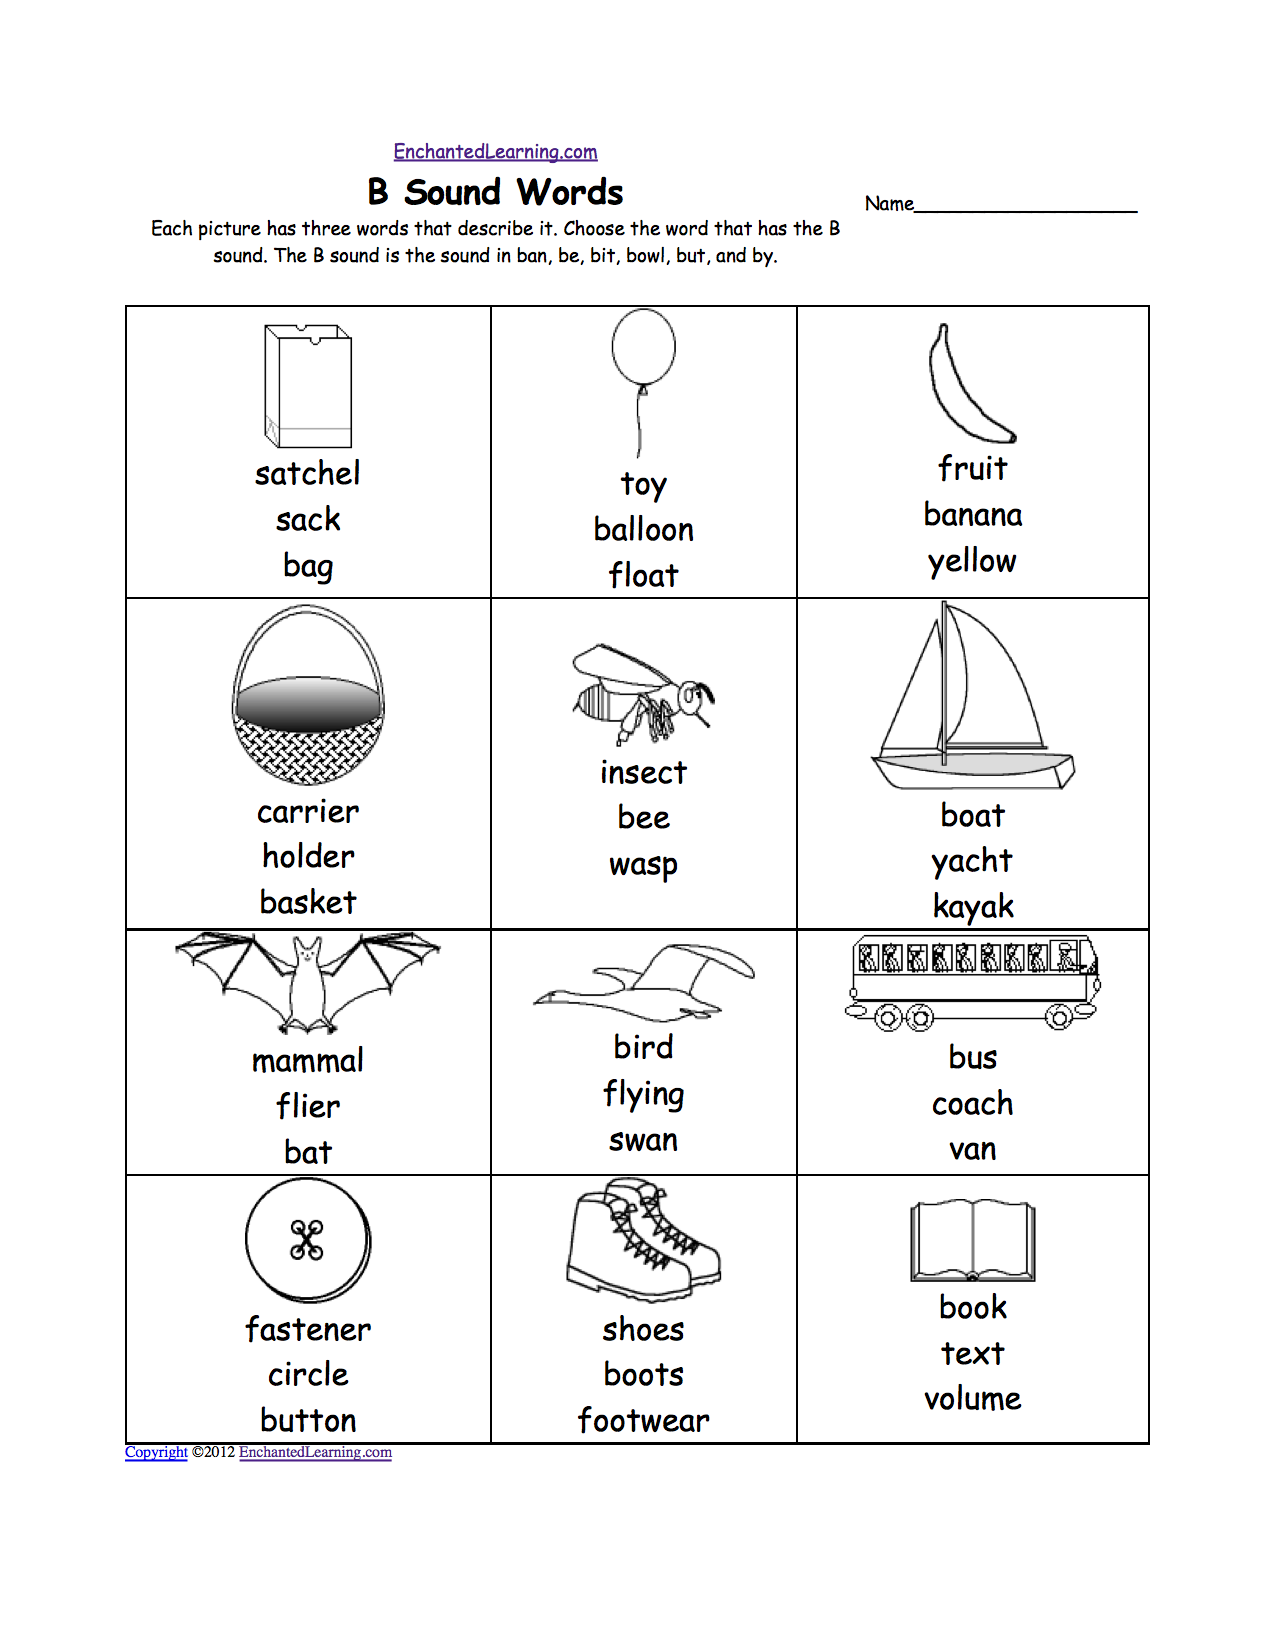 Weirdmailus  Prepossessing Phonics Worksheets Multiple Choice Worksheets To Print  With Hot Quotbquot Sound Phonics Worksheet Multiple Choice Each Picture Has Three Words That Describe It Choose The Word That Has A Quotbquot Sound The Quotbquot Sound Is The Sound  With Adorable Pre Kinder Math Worksheets Also College Worksheets Printables In Addition The Princess And The Pea Worksheets And Gcse Physics Worksheets As Well As To Too And Two Worksheet Additionally Math Money Printable Worksheets From Enchantedlearningcom With Weirdmailus  Hot Phonics Worksheets Multiple Choice Worksheets To Print  With Adorable Quotbquot Sound Phonics Worksheet Multiple Choice Each Picture Has Three Words That Describe It Choose The Word That Has A Quotbquot Sound The Quotbquot Sound Is The Sound  And Prepossessing Pre Kinder Math Worksheets Also College Worksheets Printables In Addition The Princess And The Pea Worksheets From Enchantedlearningcom